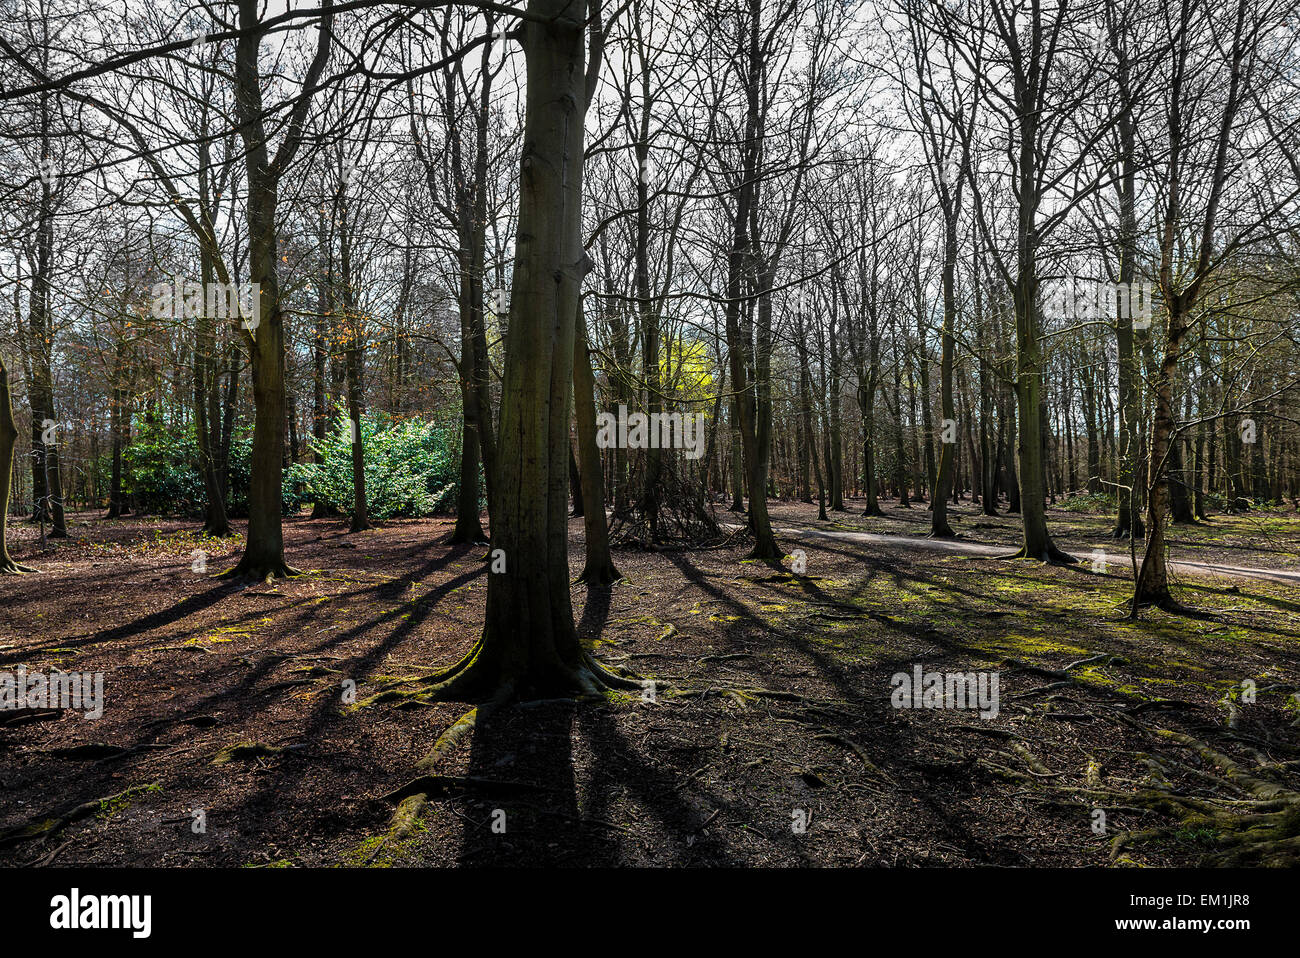 Thorndon Park woodland in Essex. - Stock Image